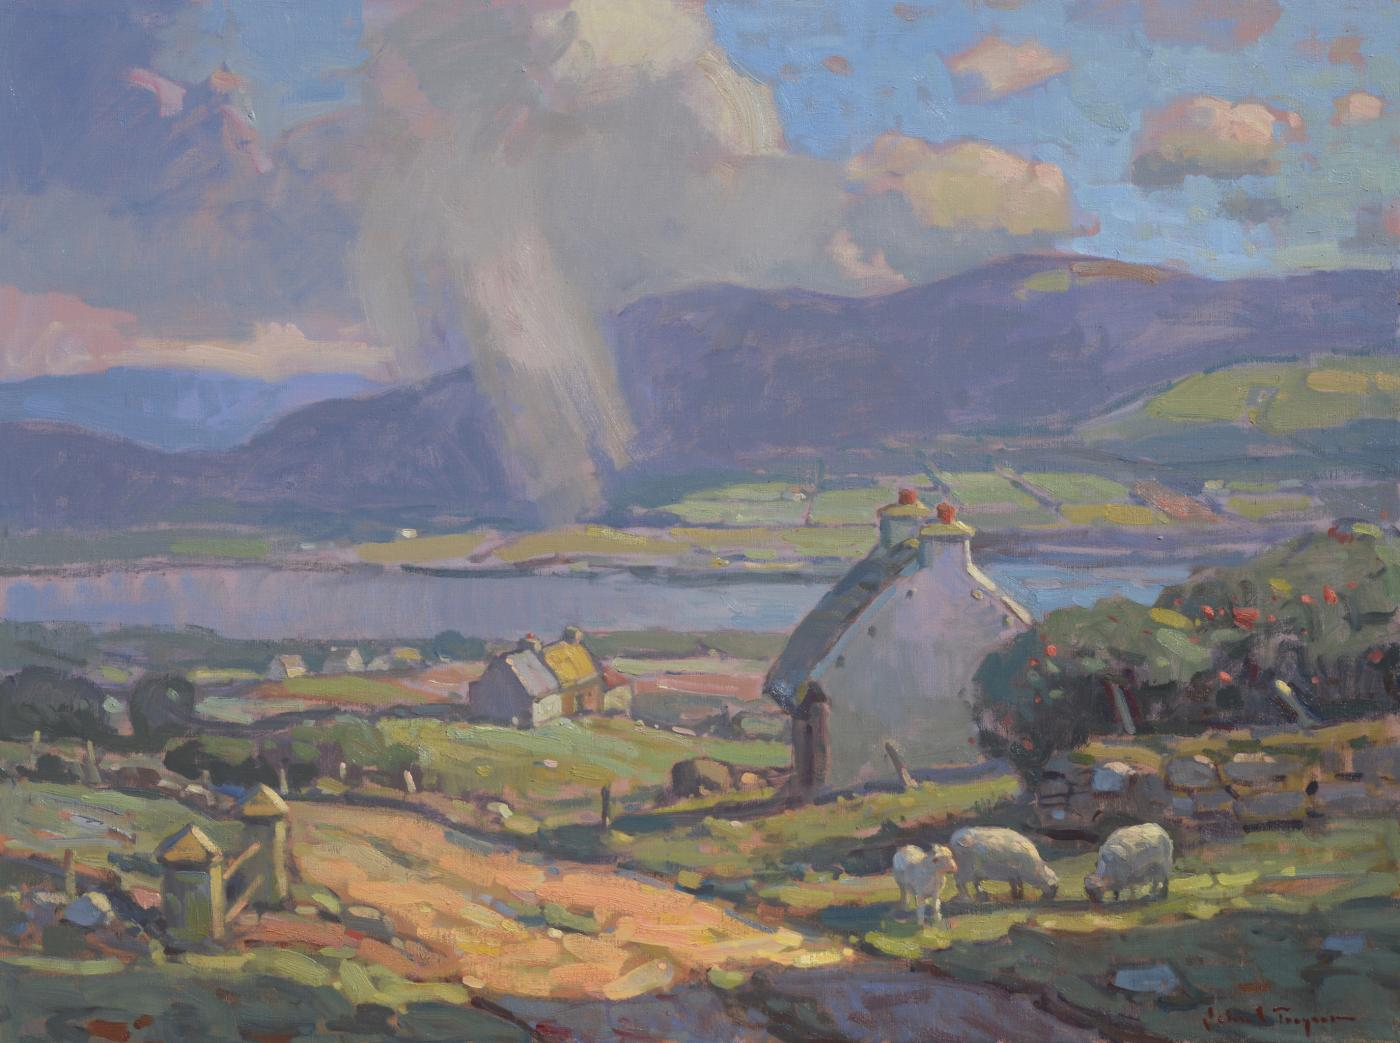 aefe277cf 'County Kerry, Ireland', large transitional contemporary landscape painting